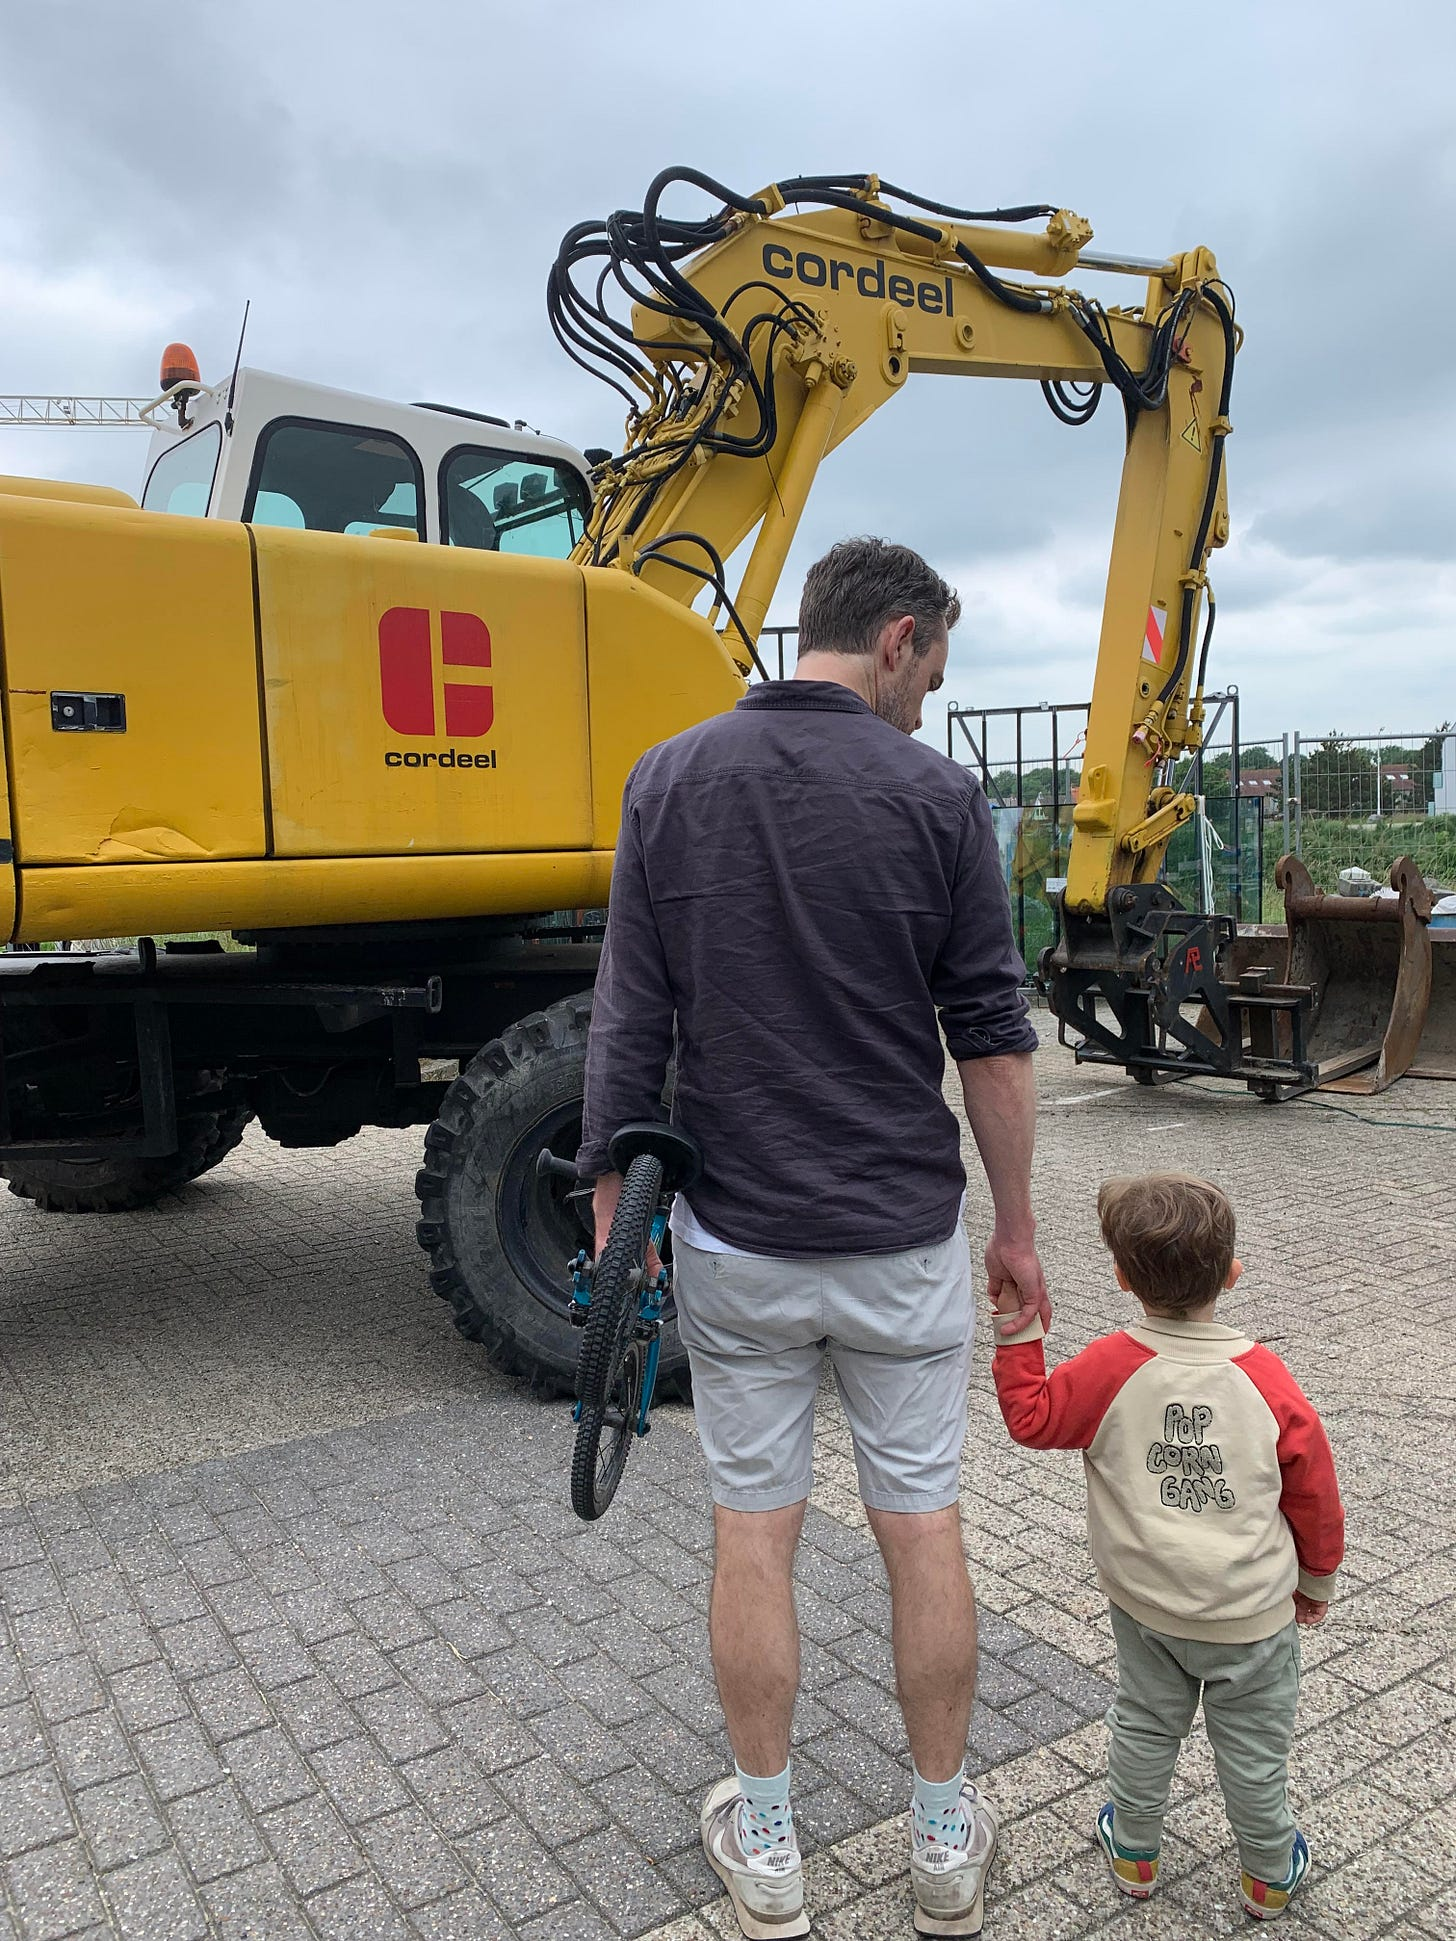 A photo of a boy and his son looking at a large yellow digger.